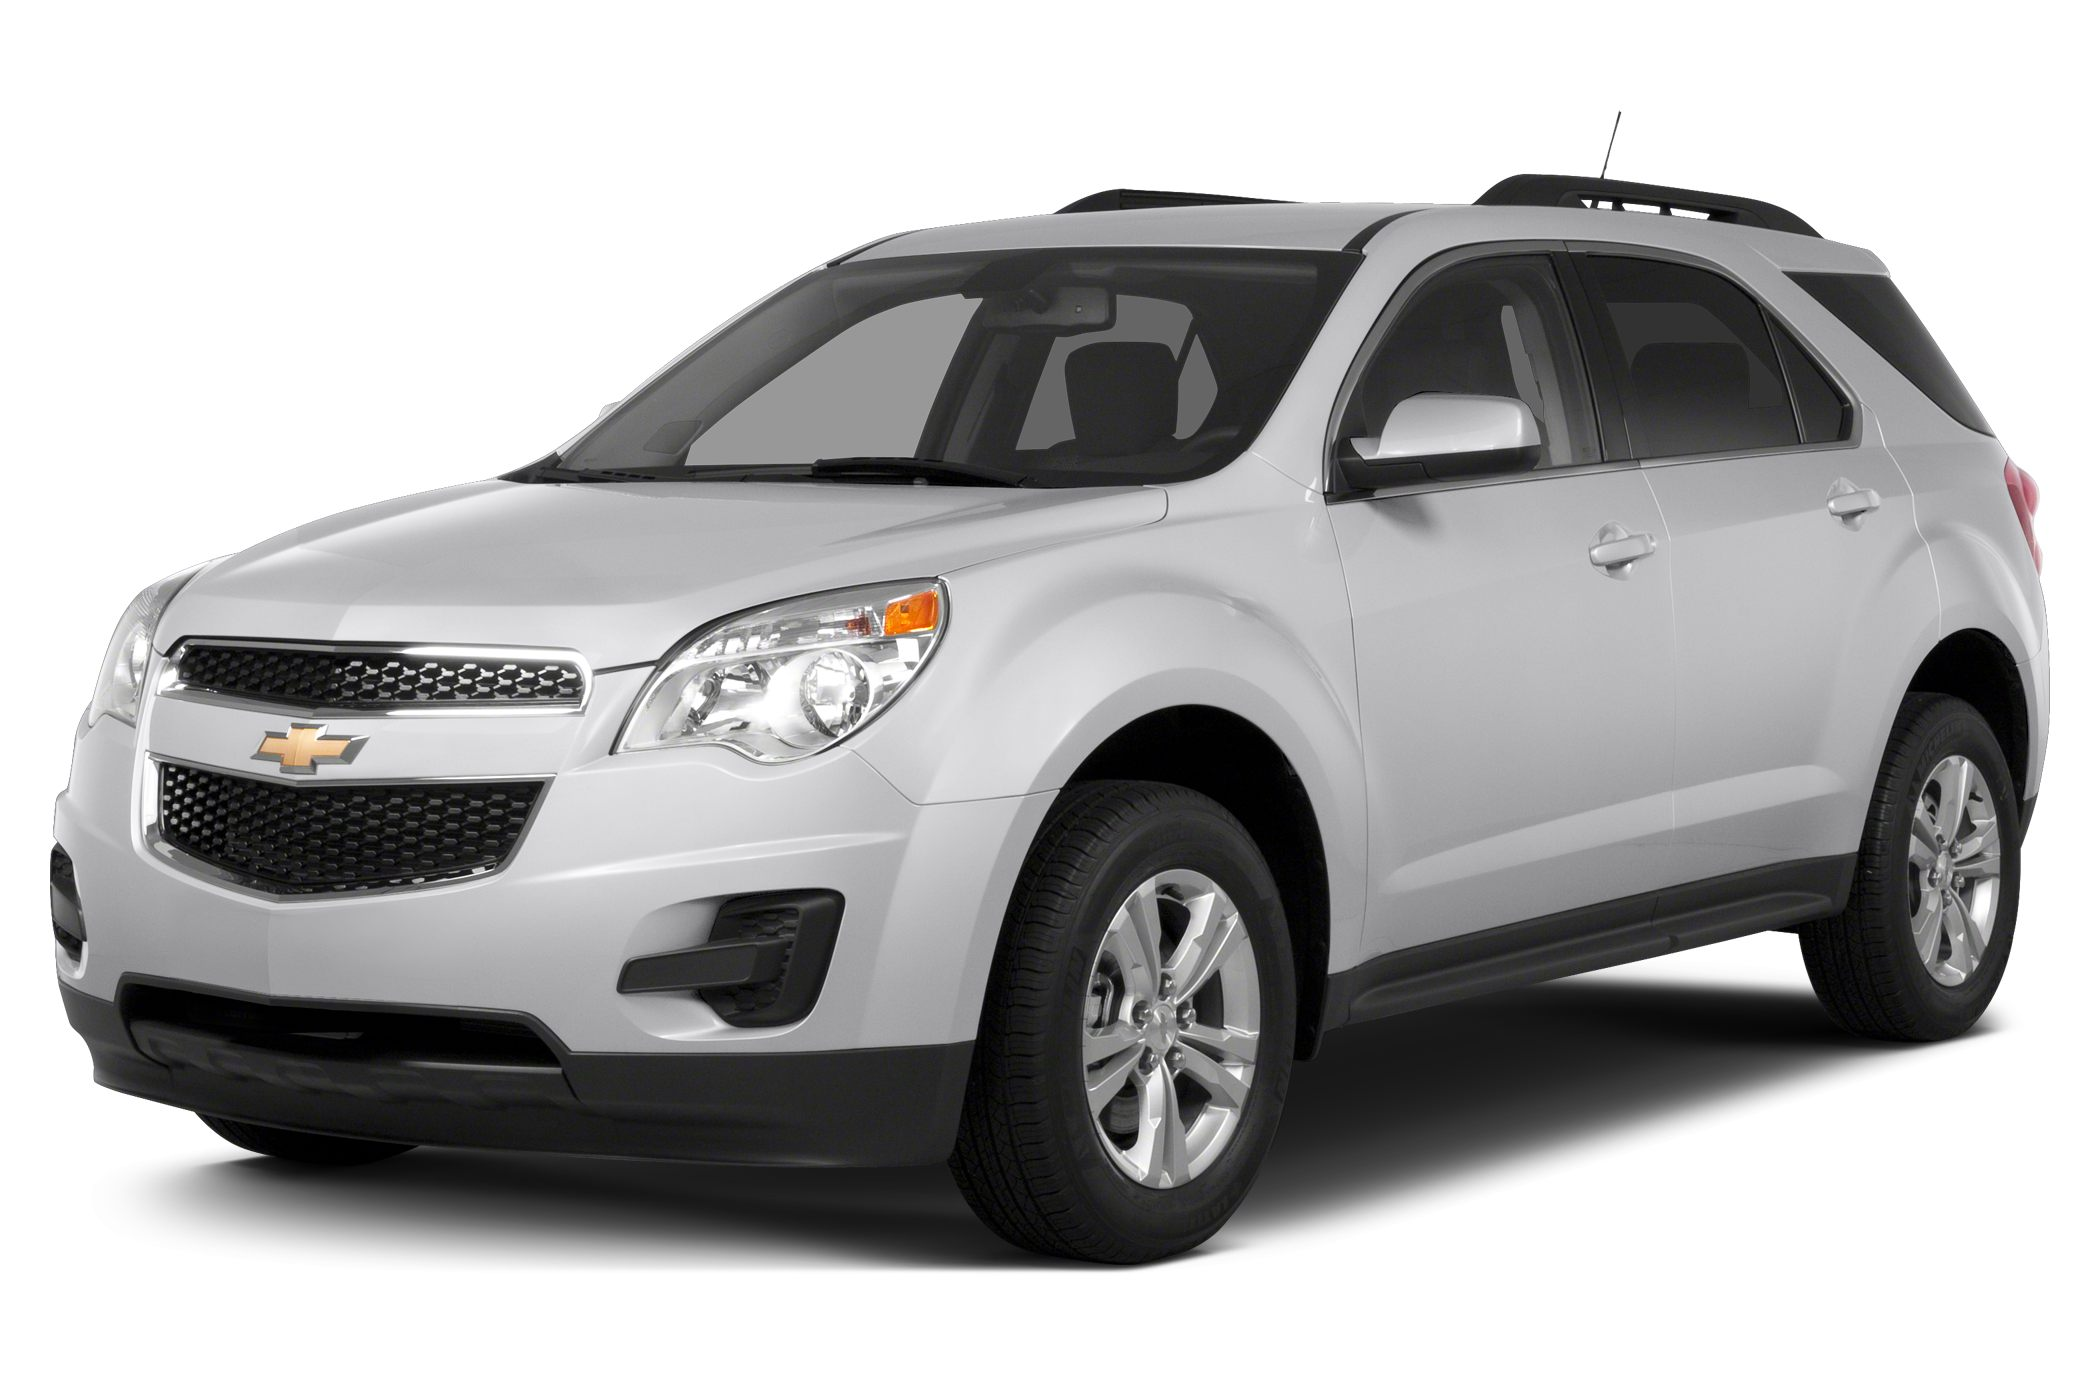 2015 Chevrolet Equinox 1LT SUV for sale in Baltimore for $24,857 with 5 miles.